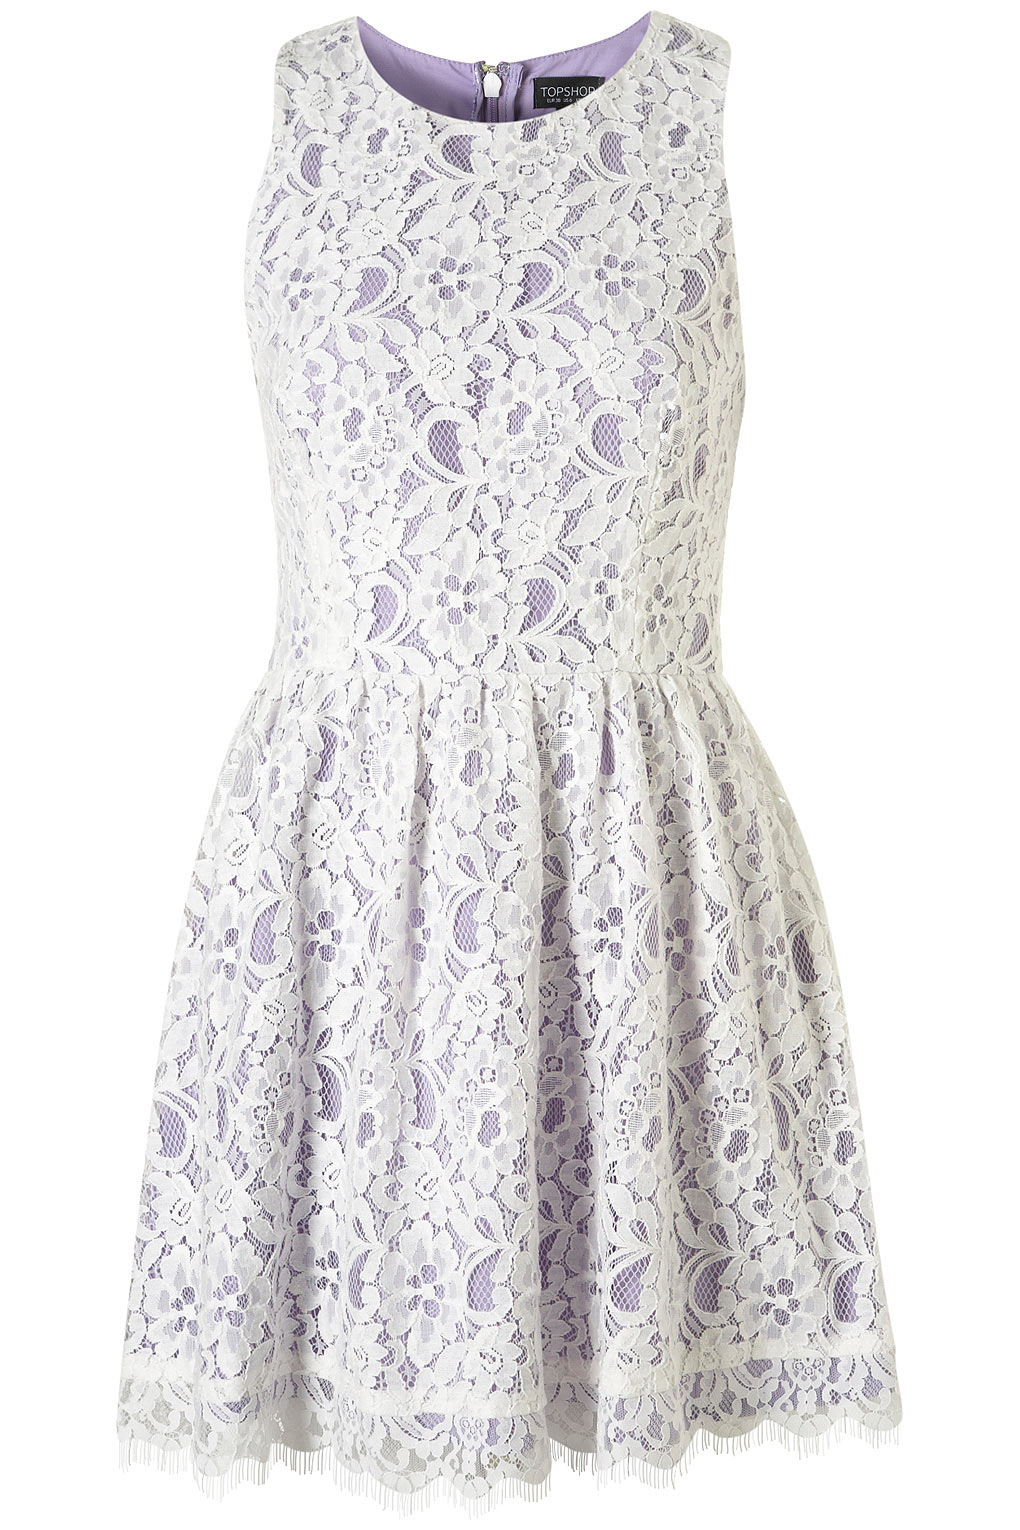 Lyst - Topshop Sleeveless Lace Dress in Purple